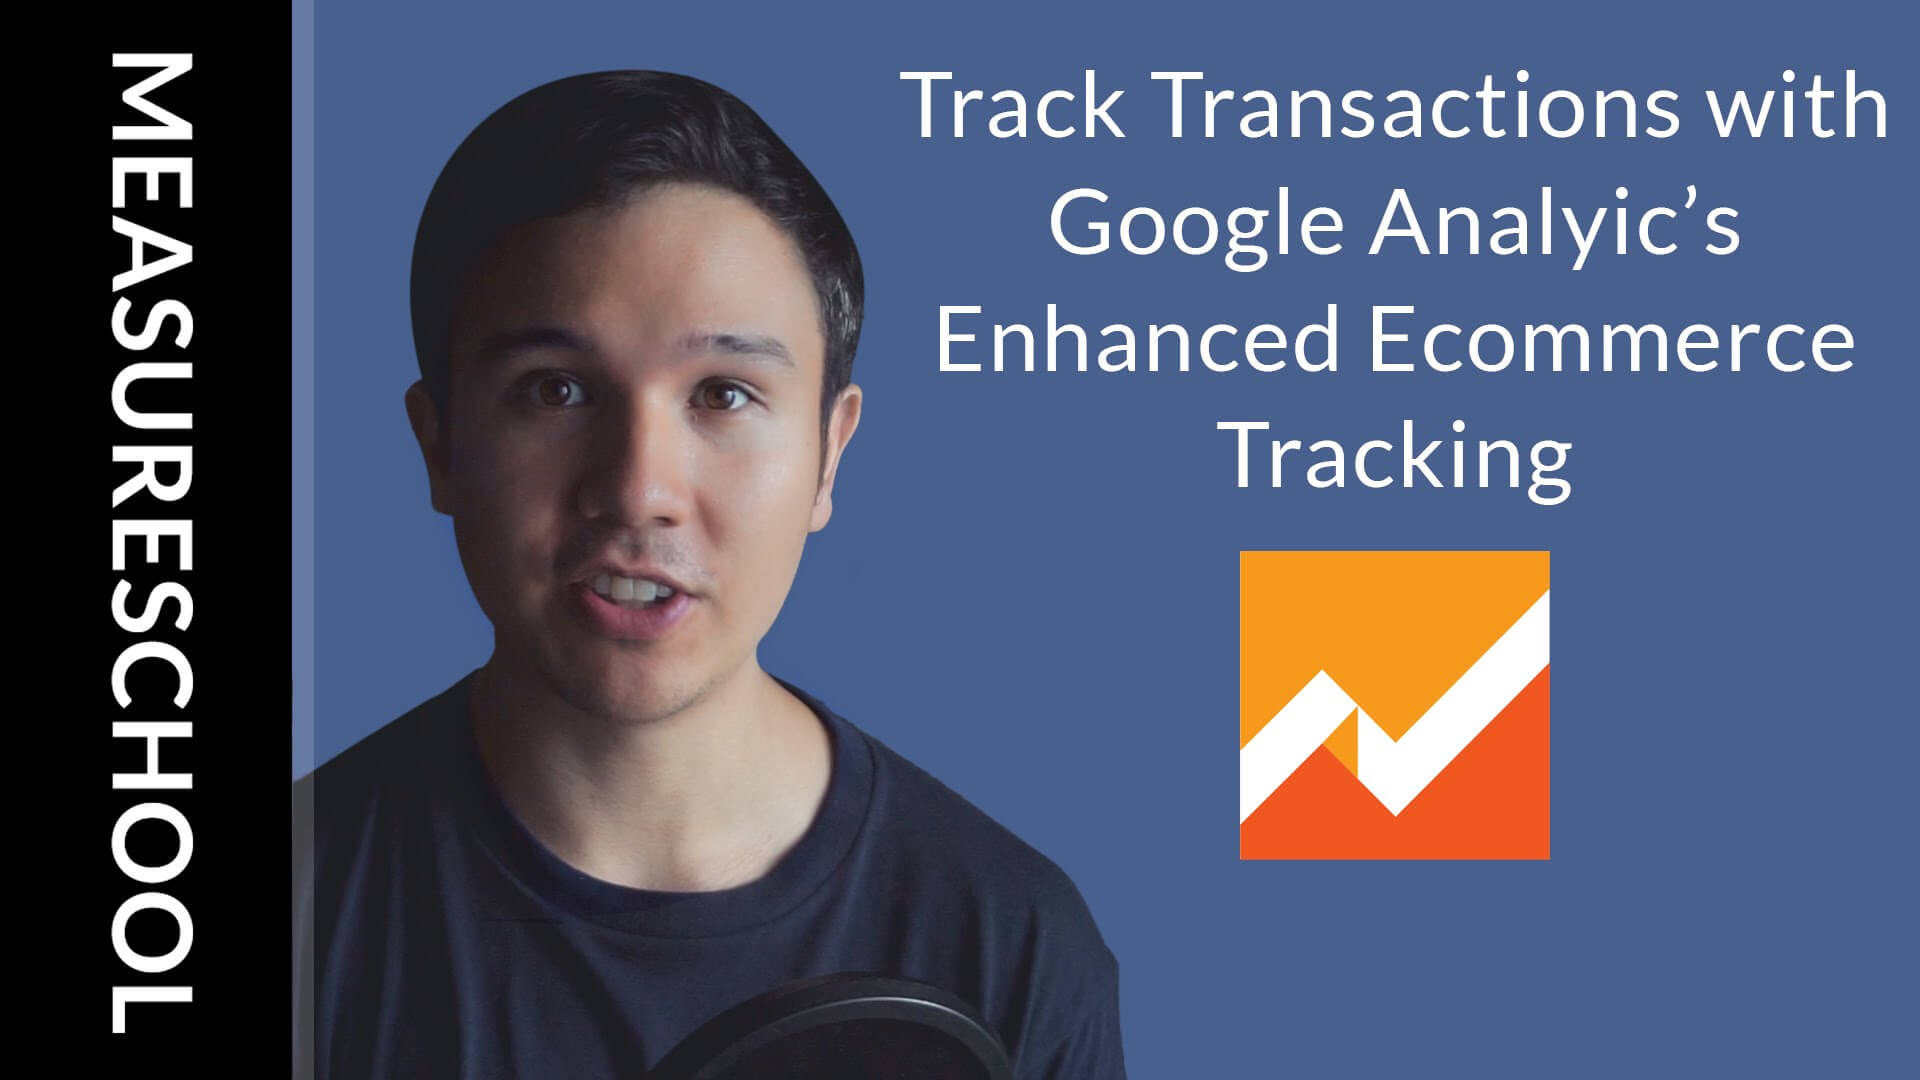 How to Track Transactions with Google Analytics Enhanced Ecommerce Functionality